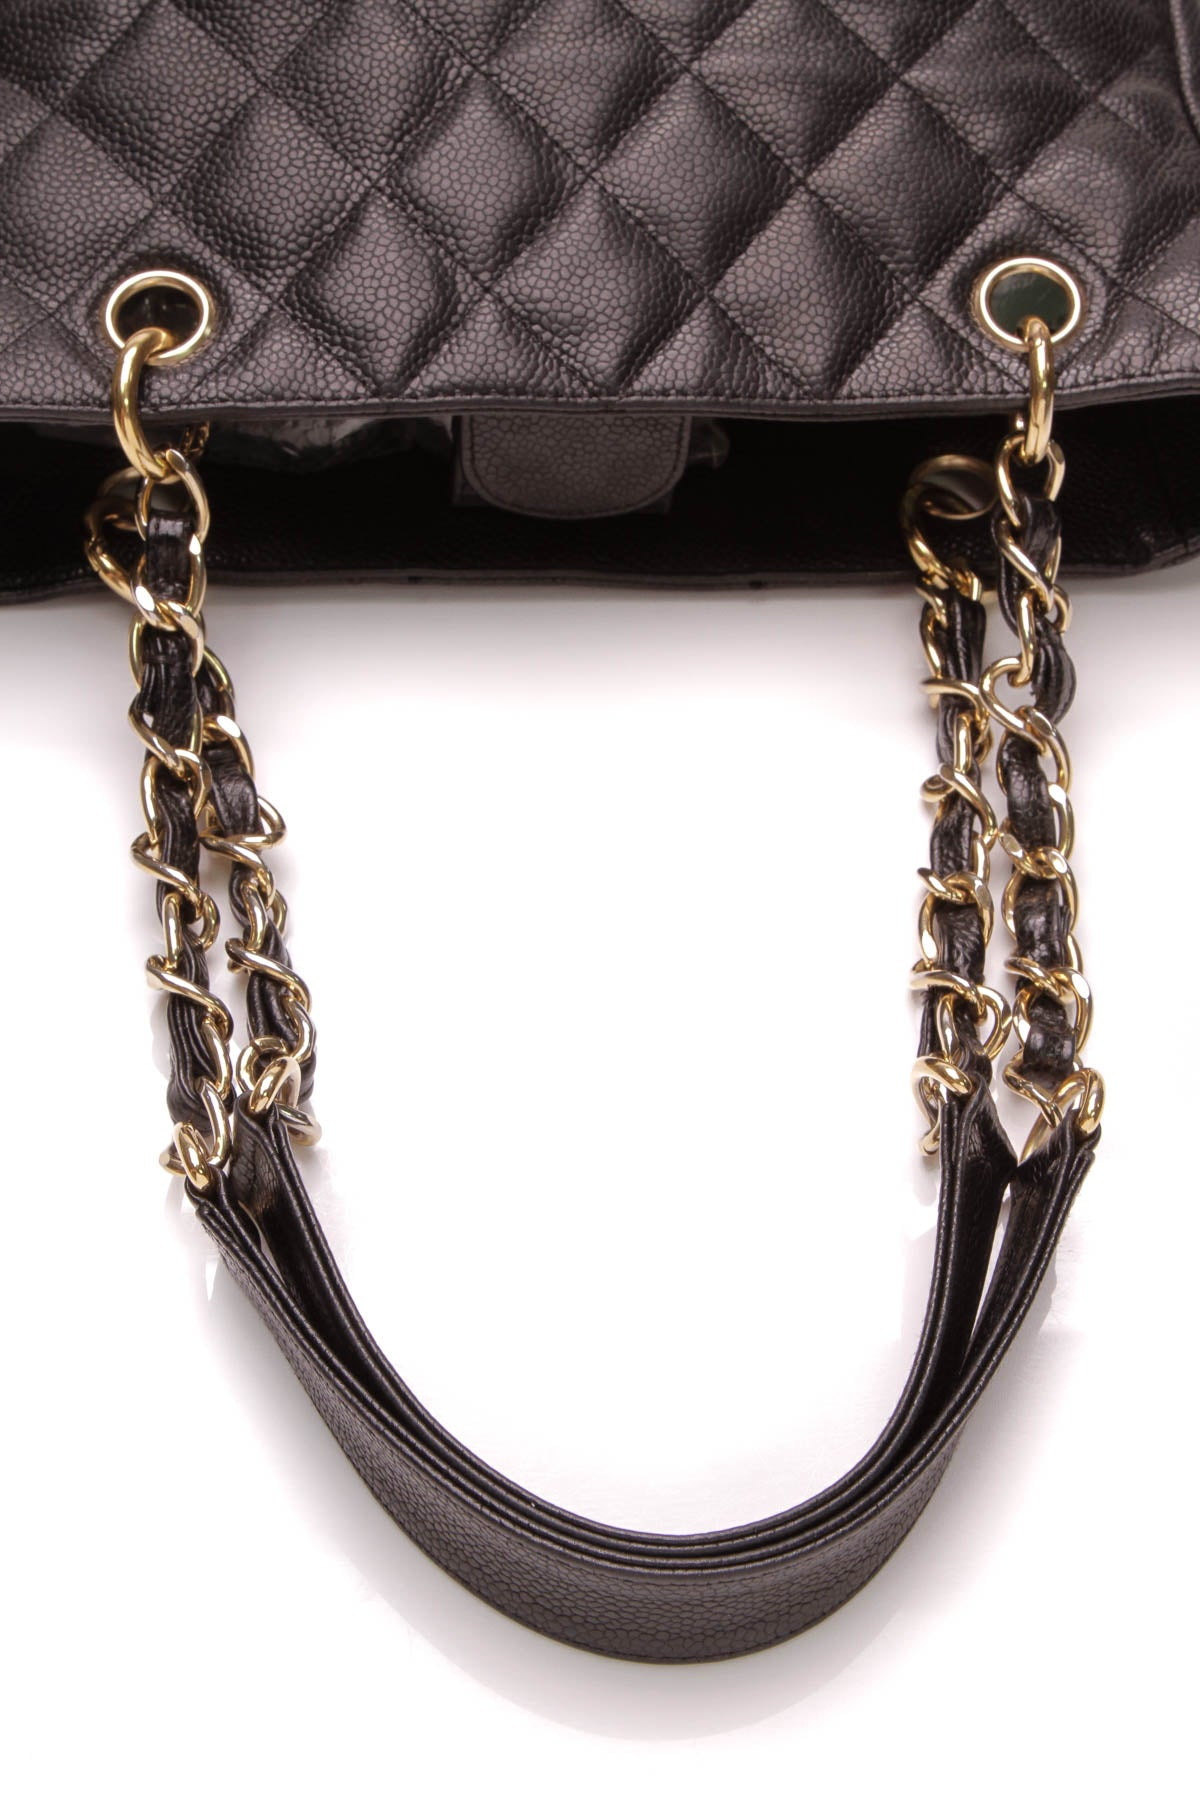 31a792af5f73 Chanel PST Petite Shopping Tote Bag - Black – Couture USA